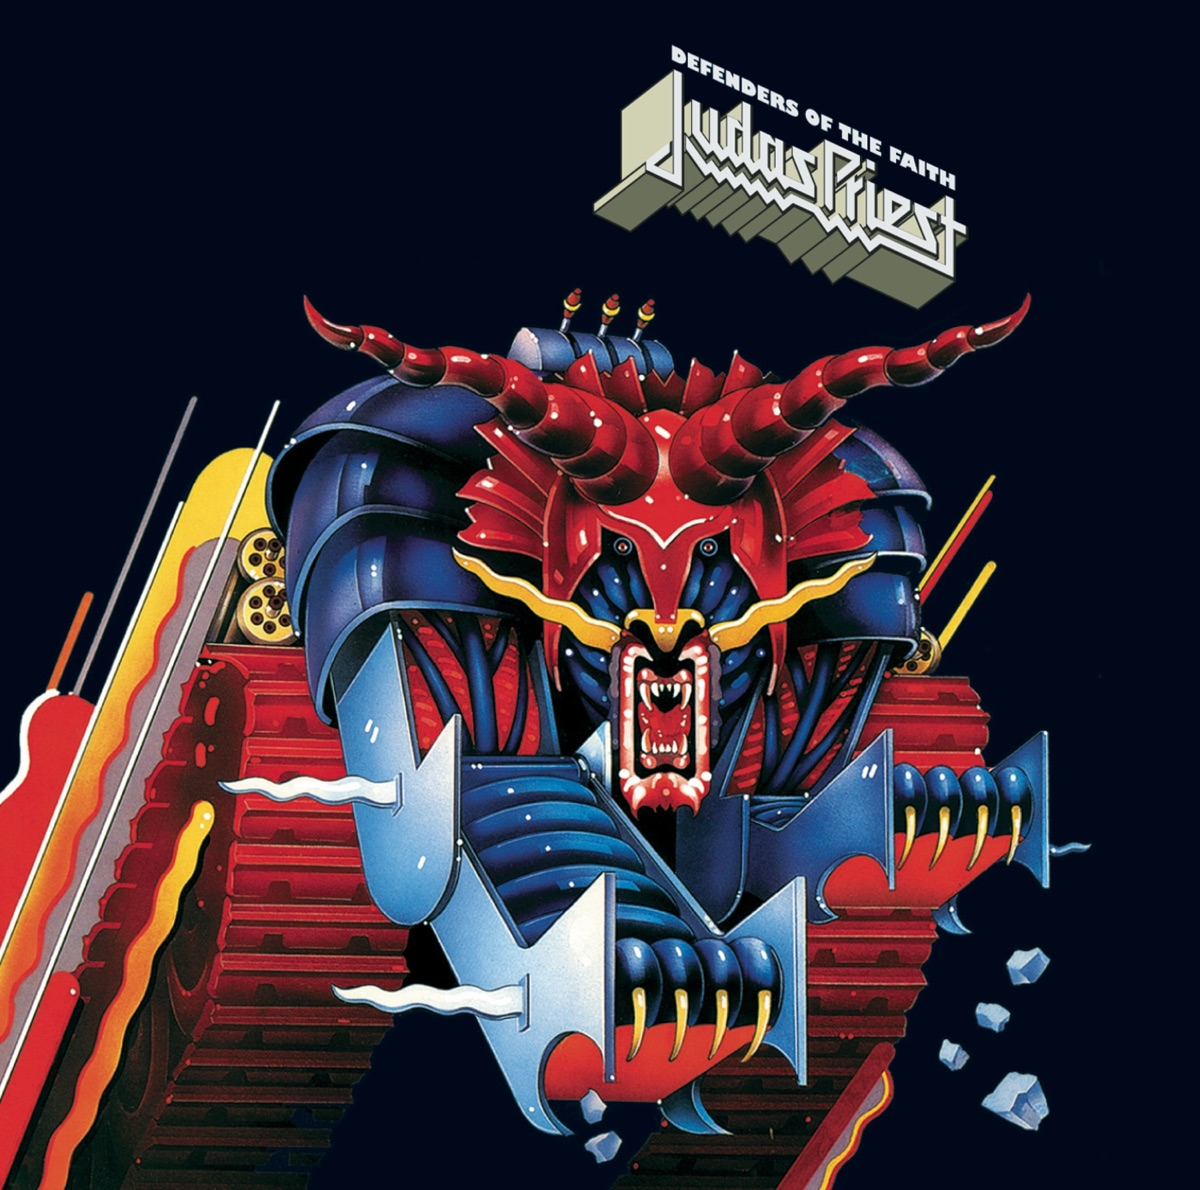 Defenders of the Faith Judas Priest CD cover